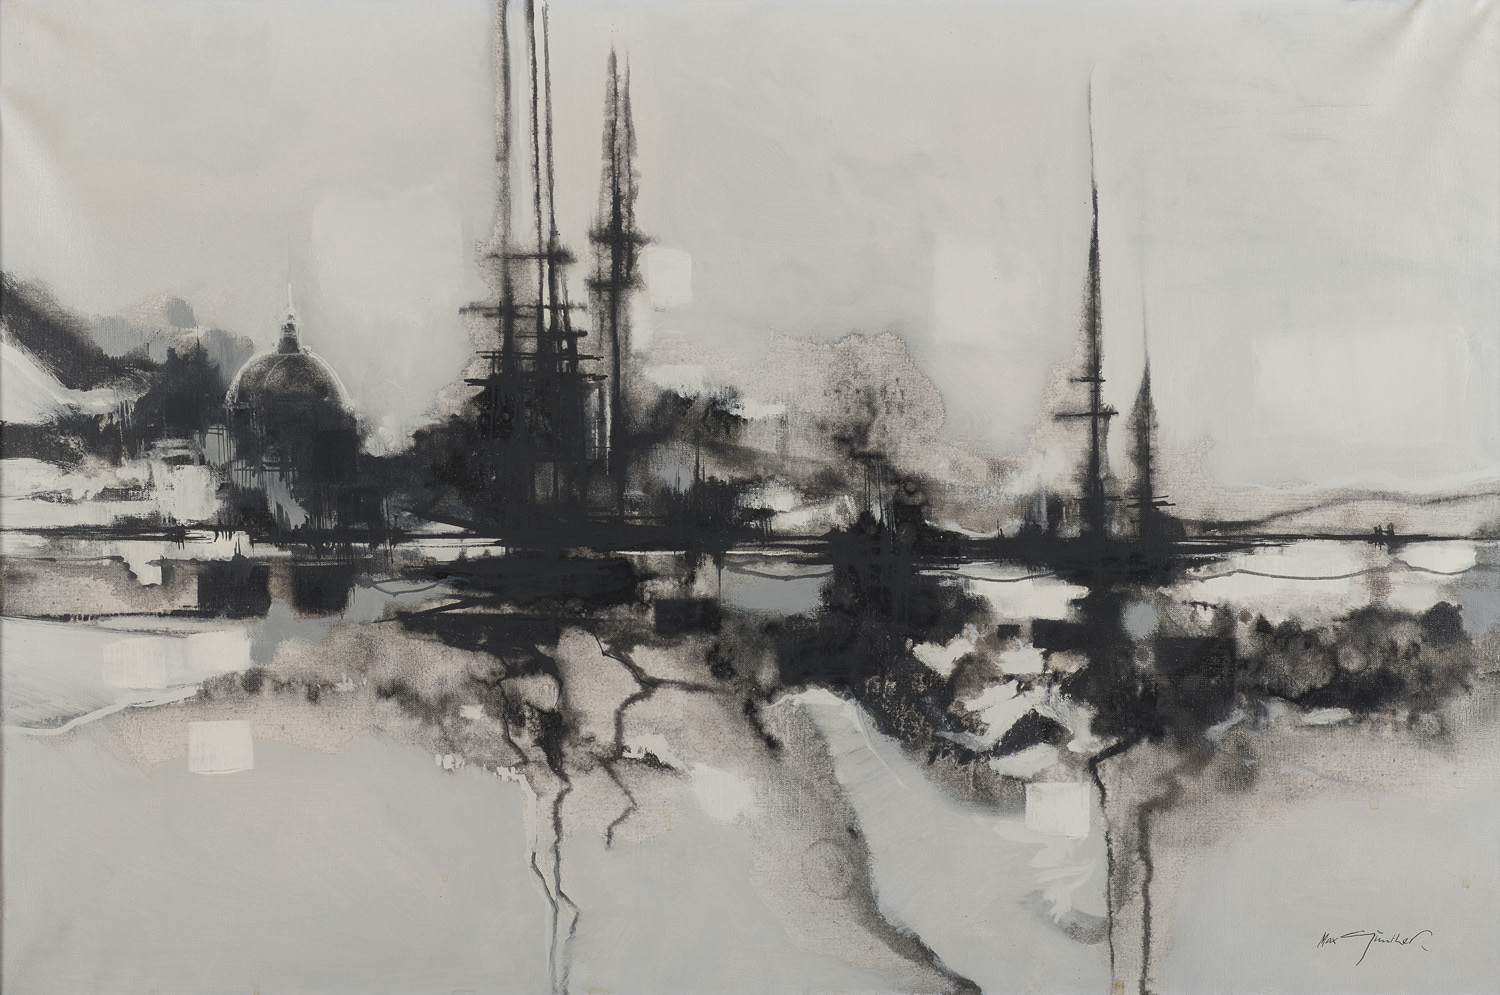 OIL PAINTING BY MAX GUNTHER 1967